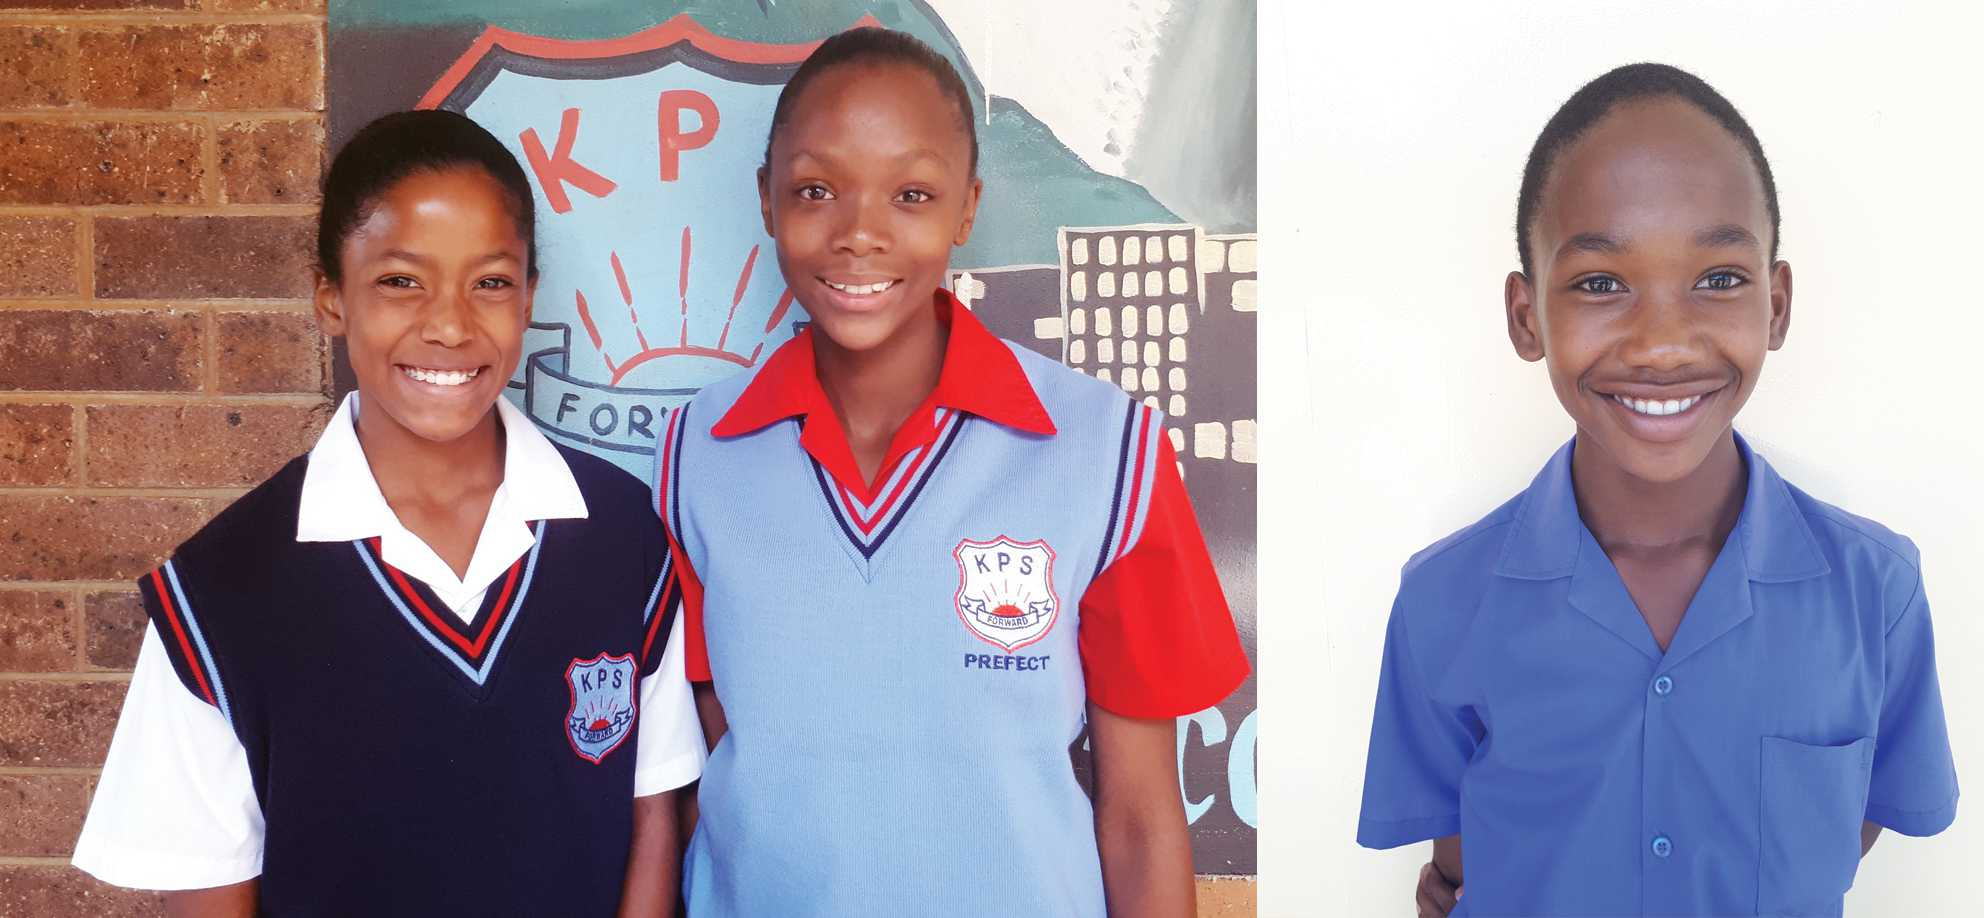 Angel Geel (u/12), Otlotleng Tshabadira (u/13) and Tlotliso Mokhele (u/12) of KPS participated in the NW Athletics Championships last week in Potch. Geel ended third in the 1200 m, Tshabadira ended second in the 200 m and Mokhele ended second in the 100m.